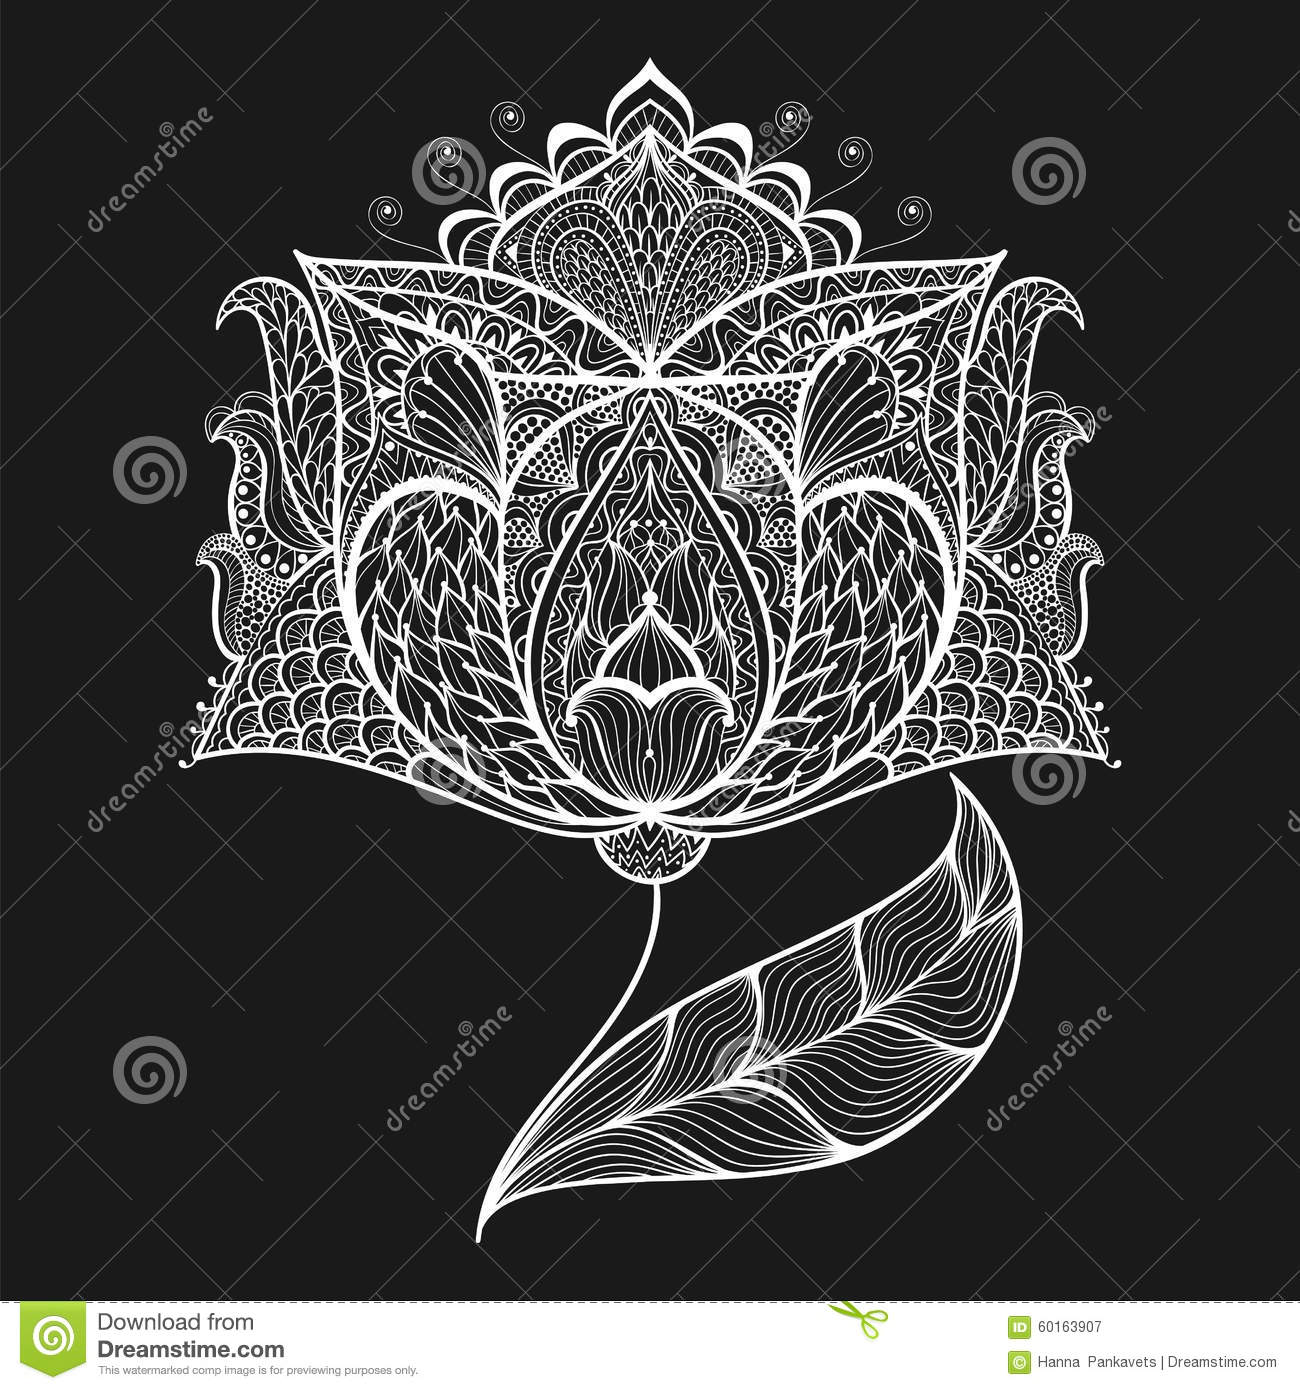 Hand Drawn Magic Flower For Adult Anti Stress Coloring